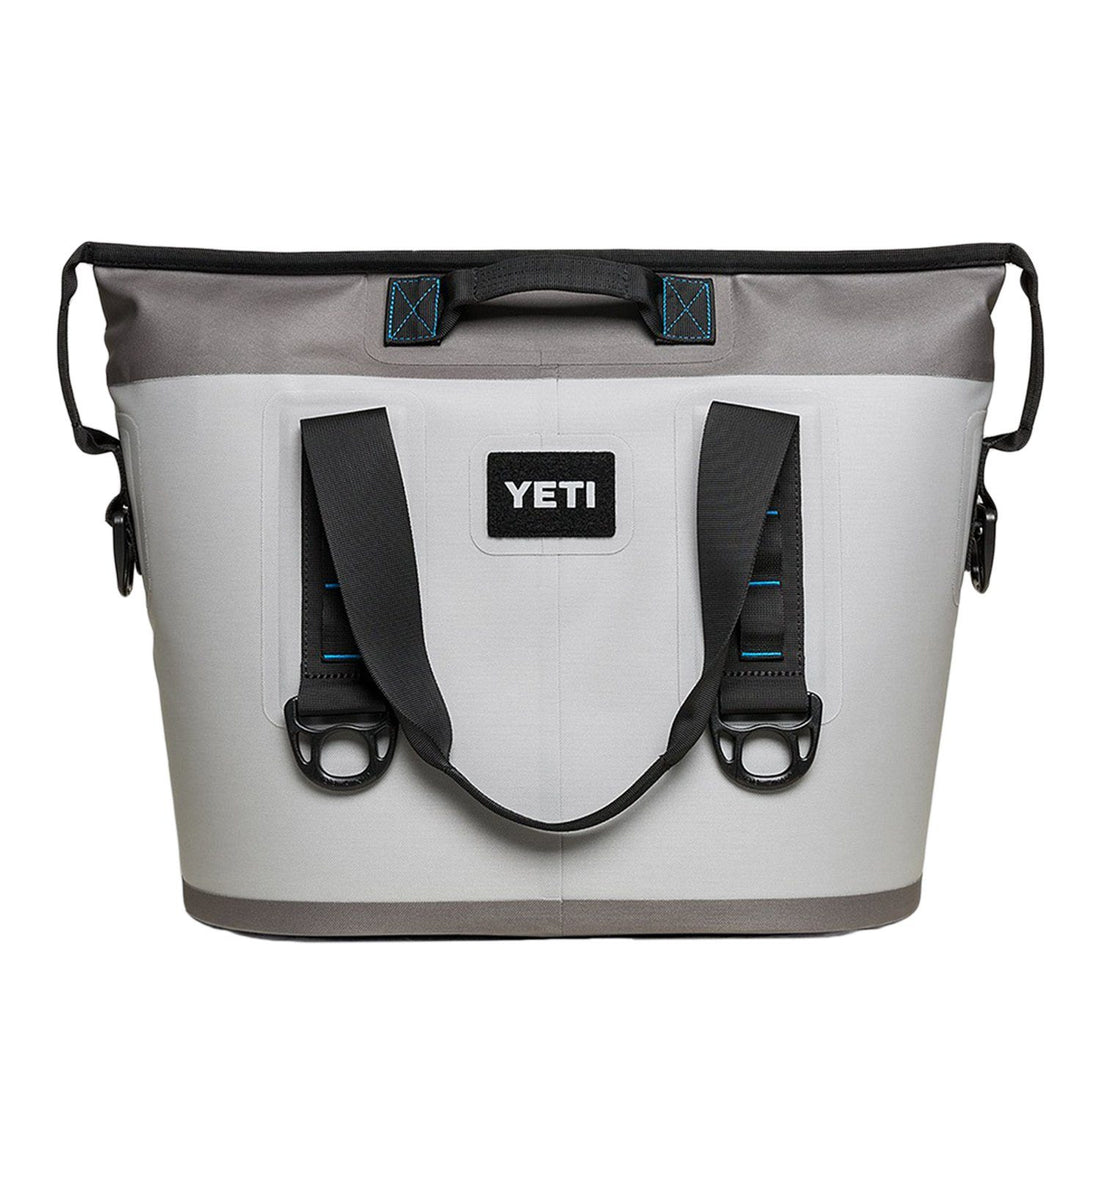 Yeti Hopper Two 20 Fog Gray - Outdoor Living/Travel - Iron and Resin